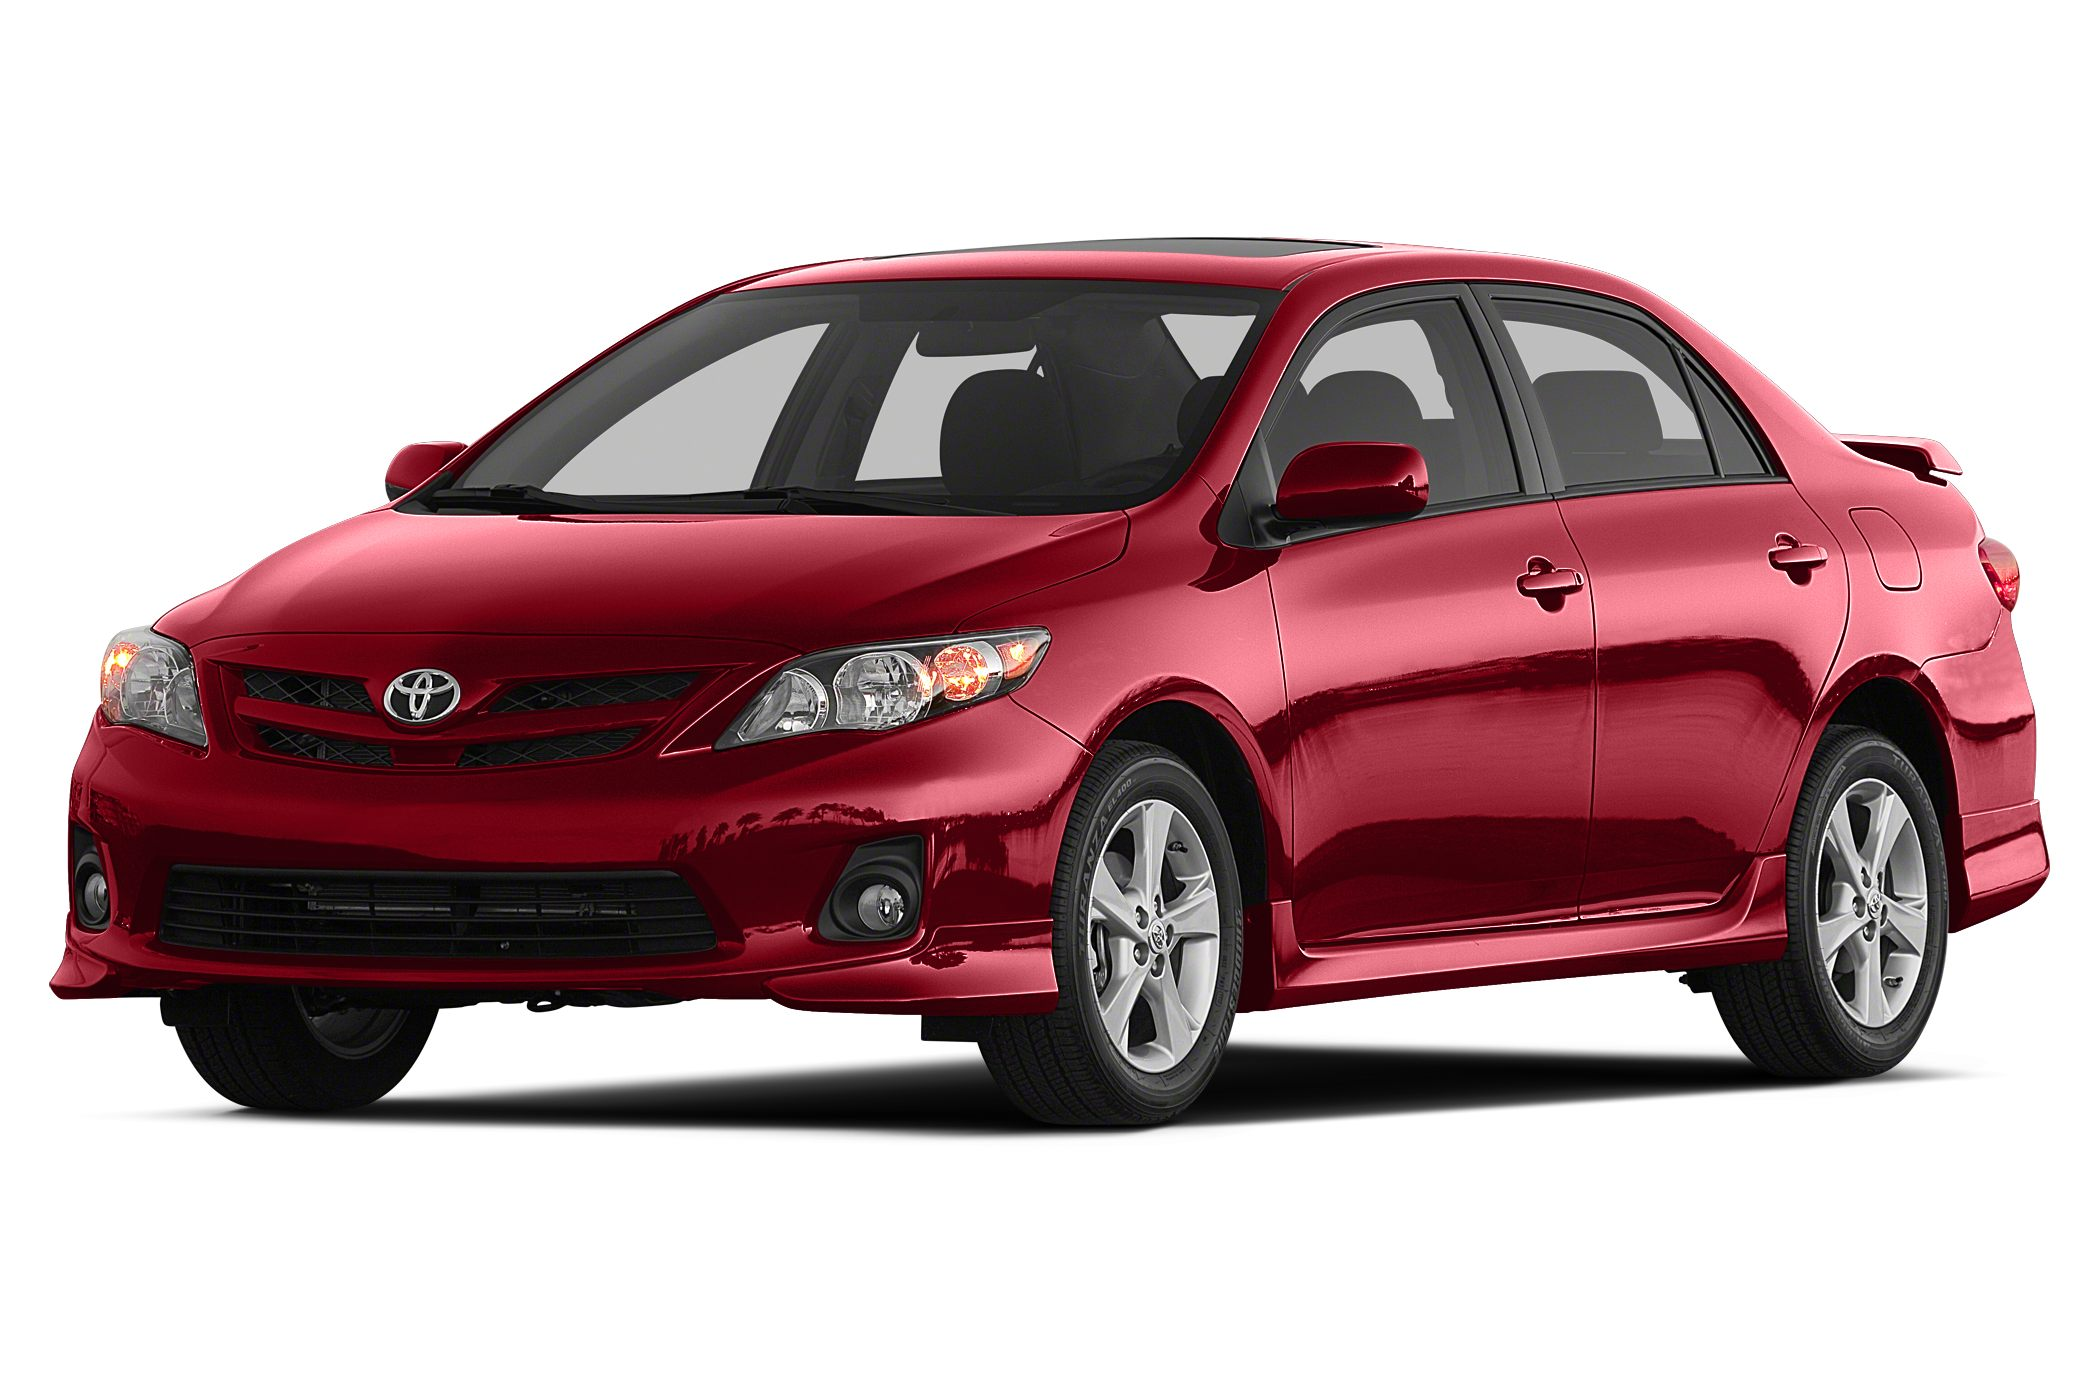 2011 Toyota Corolla S Sedan for sale in Murray for $13,500 with 75,533 miles